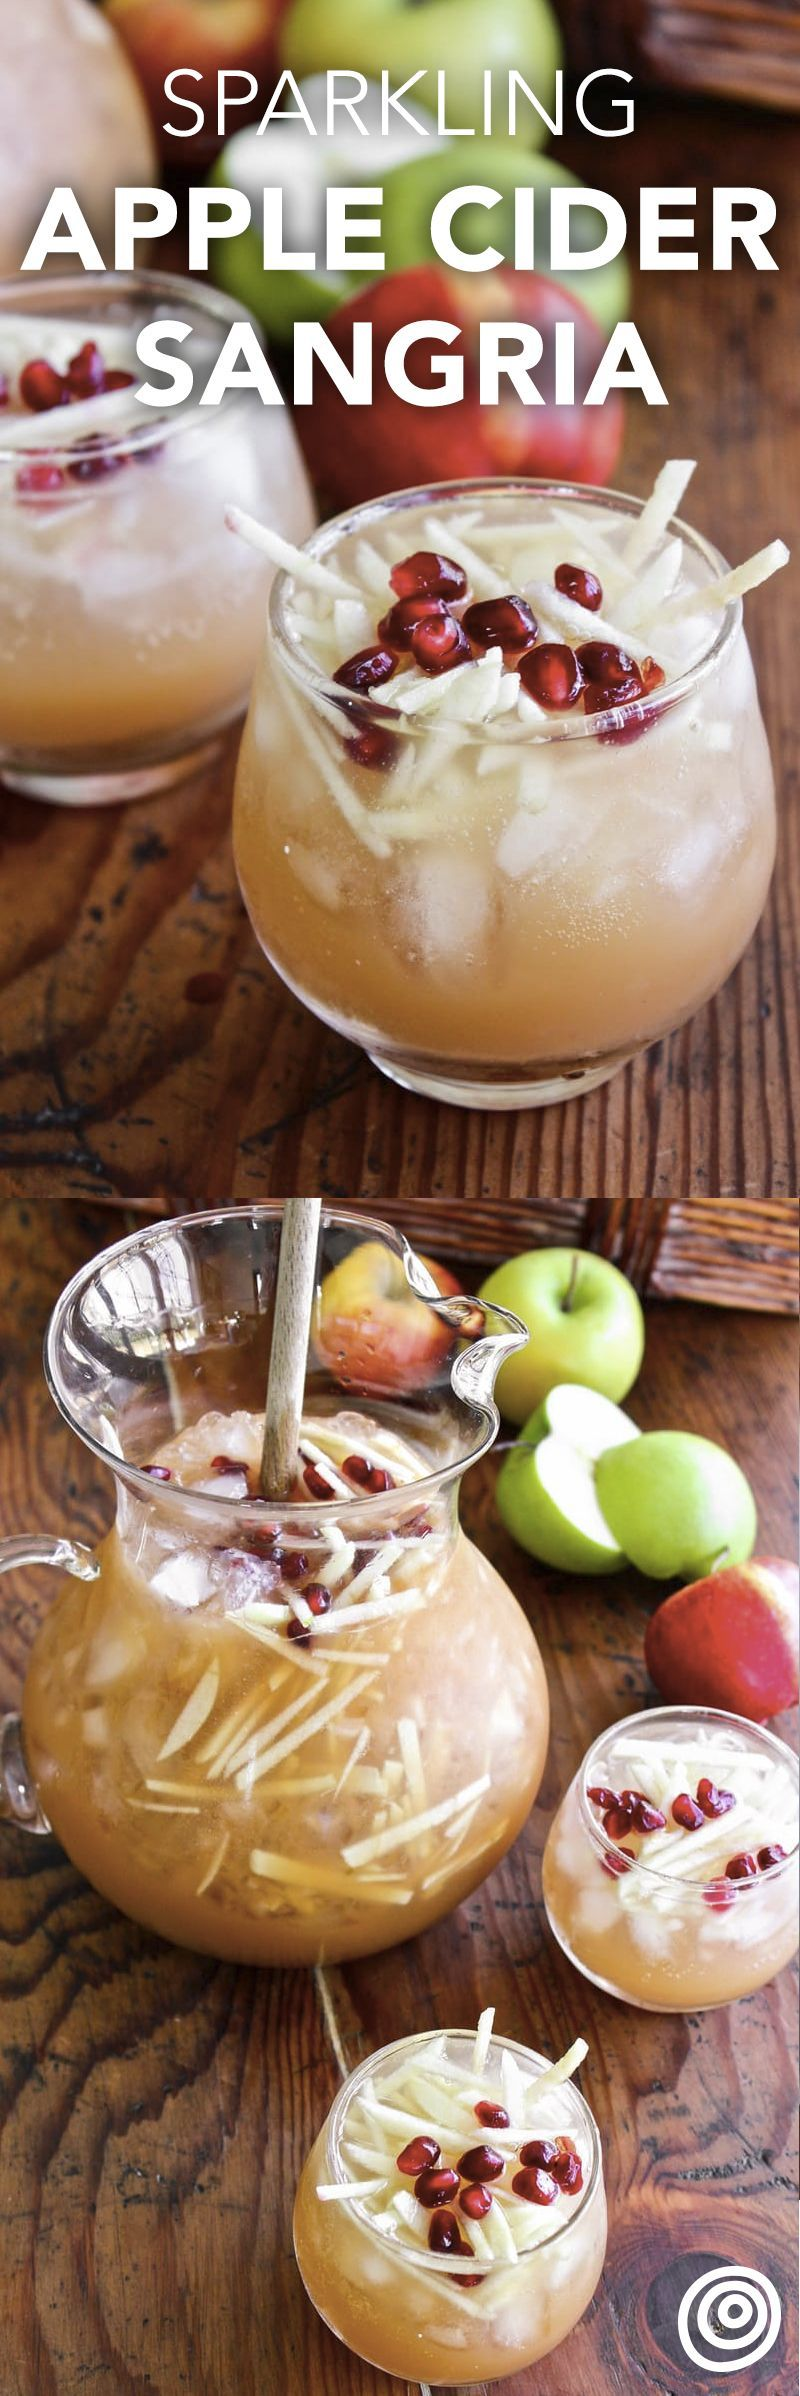 Sparkling Apple Cider Sangria Sparkling Apple Cider Sangria Recipe. This is a great idea for party punches this fall and winter. Try this crowd pleaser, easy, pitcher drinks or pitcher cocktail for a crowd at one of your holiday (hello, Halloween and Thanksgiving) parties this year! You'll need, apples (it's a great way to use them up), cognac, cider, cava, and pomegranate seeds or arils. This contains alcohol, but we've got an alternate recipe to make it non-alcoholic too.